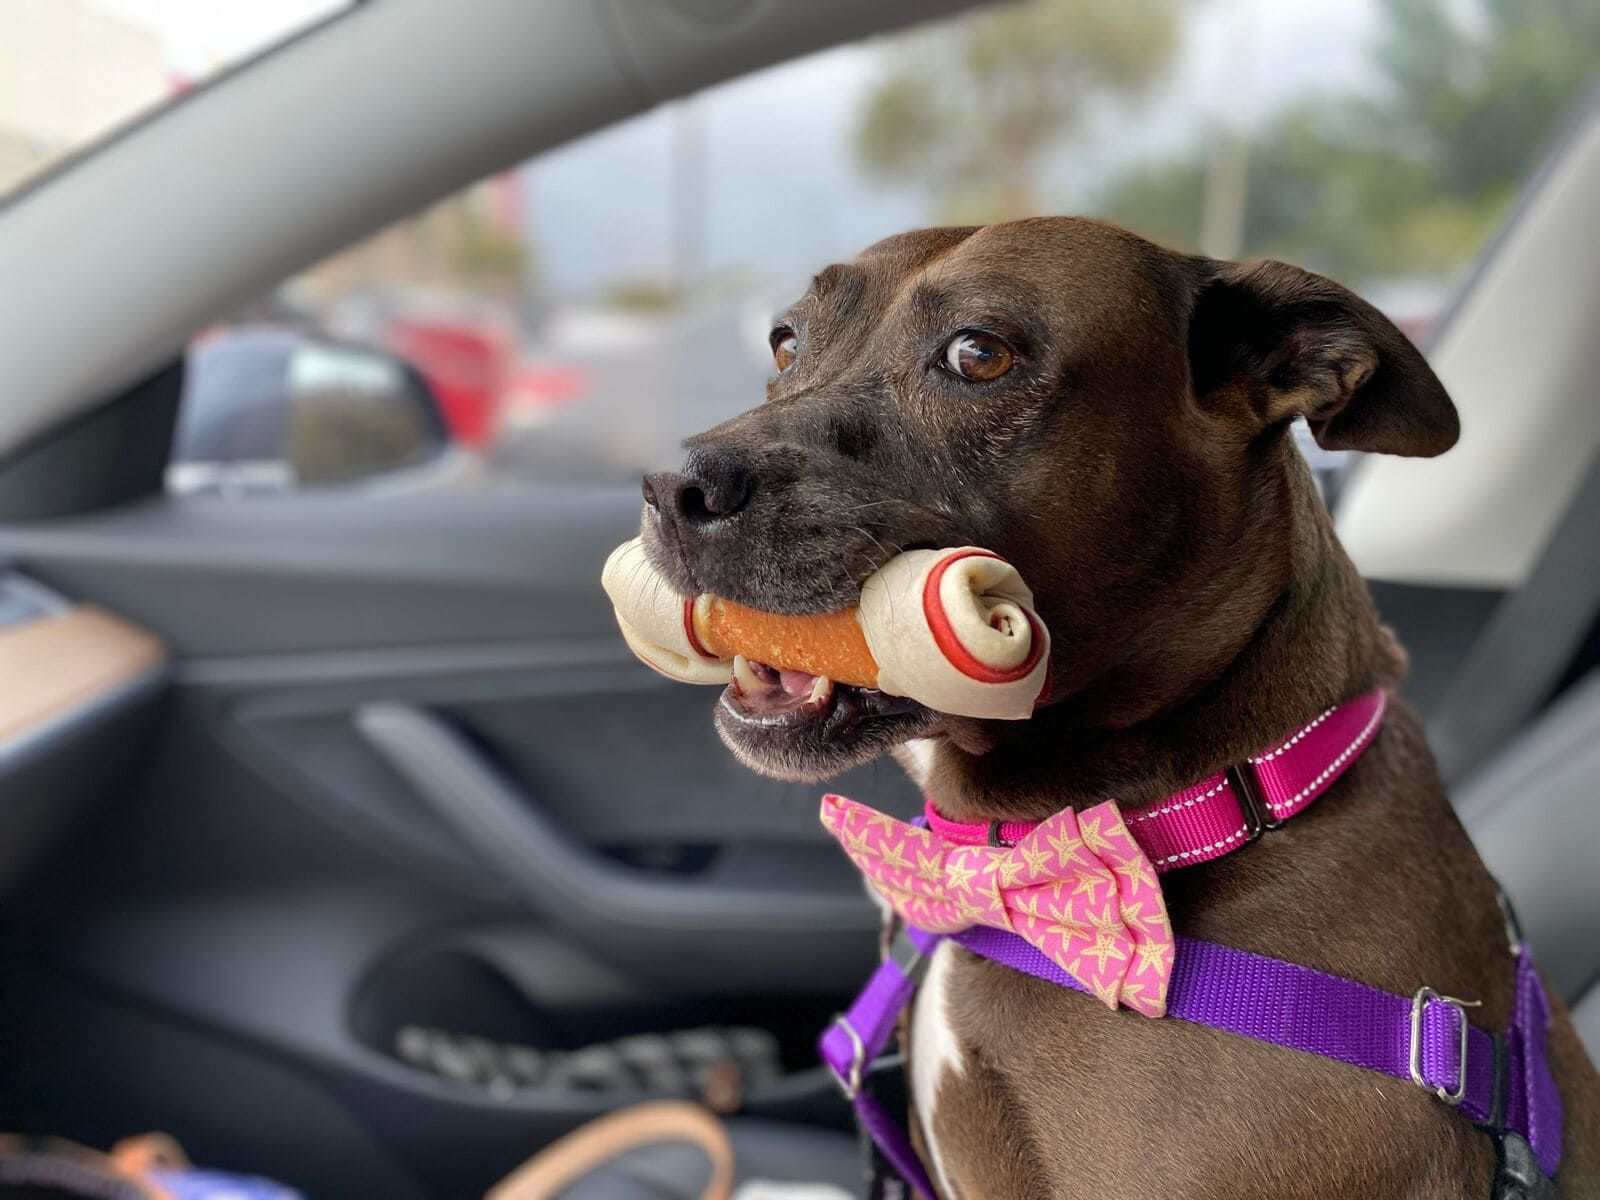 Dog sitting in the car with a bone in its mouth